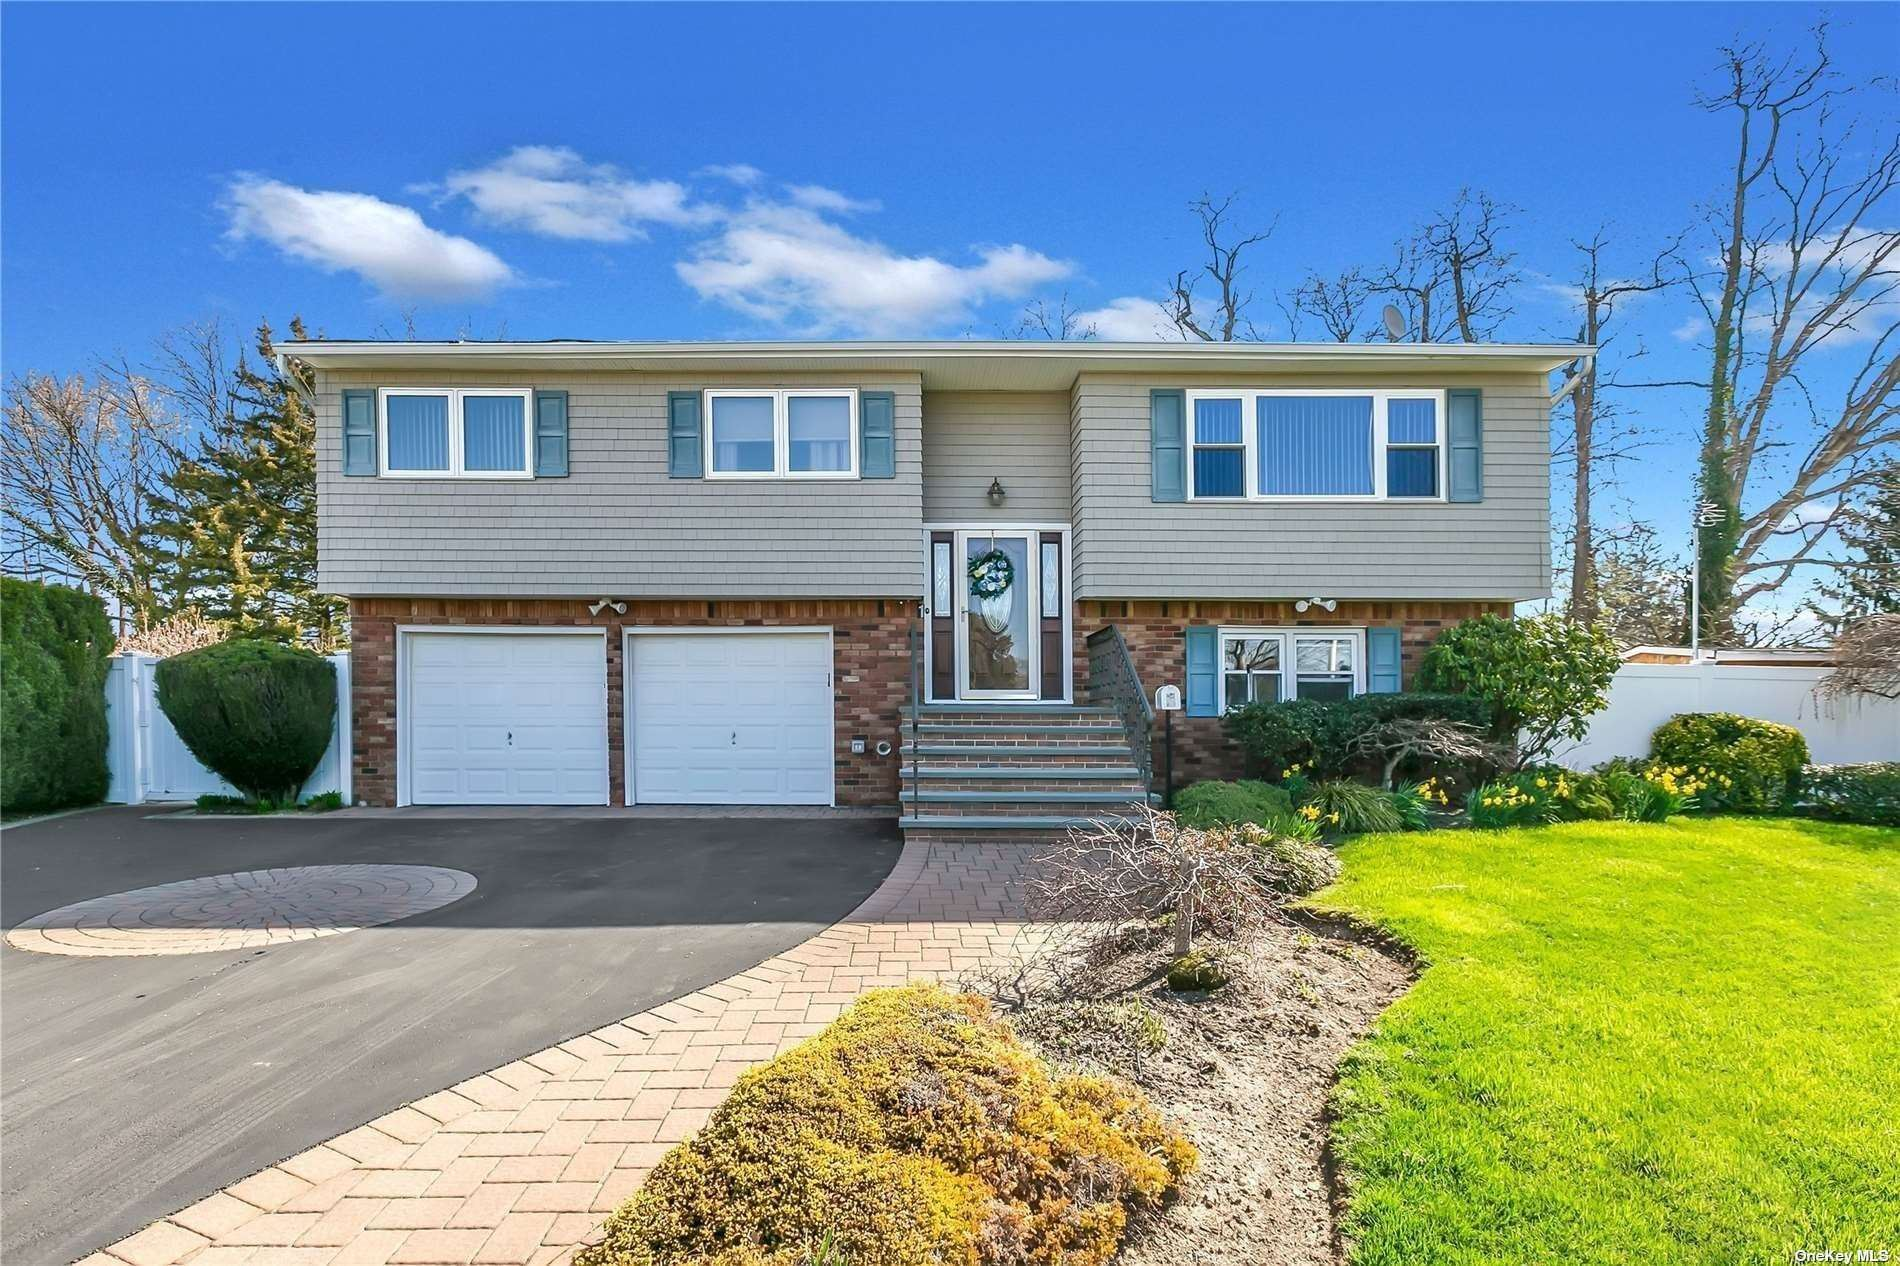 1 Jacqueline, West Babylon, NY 11704 - MLS#: 3304080